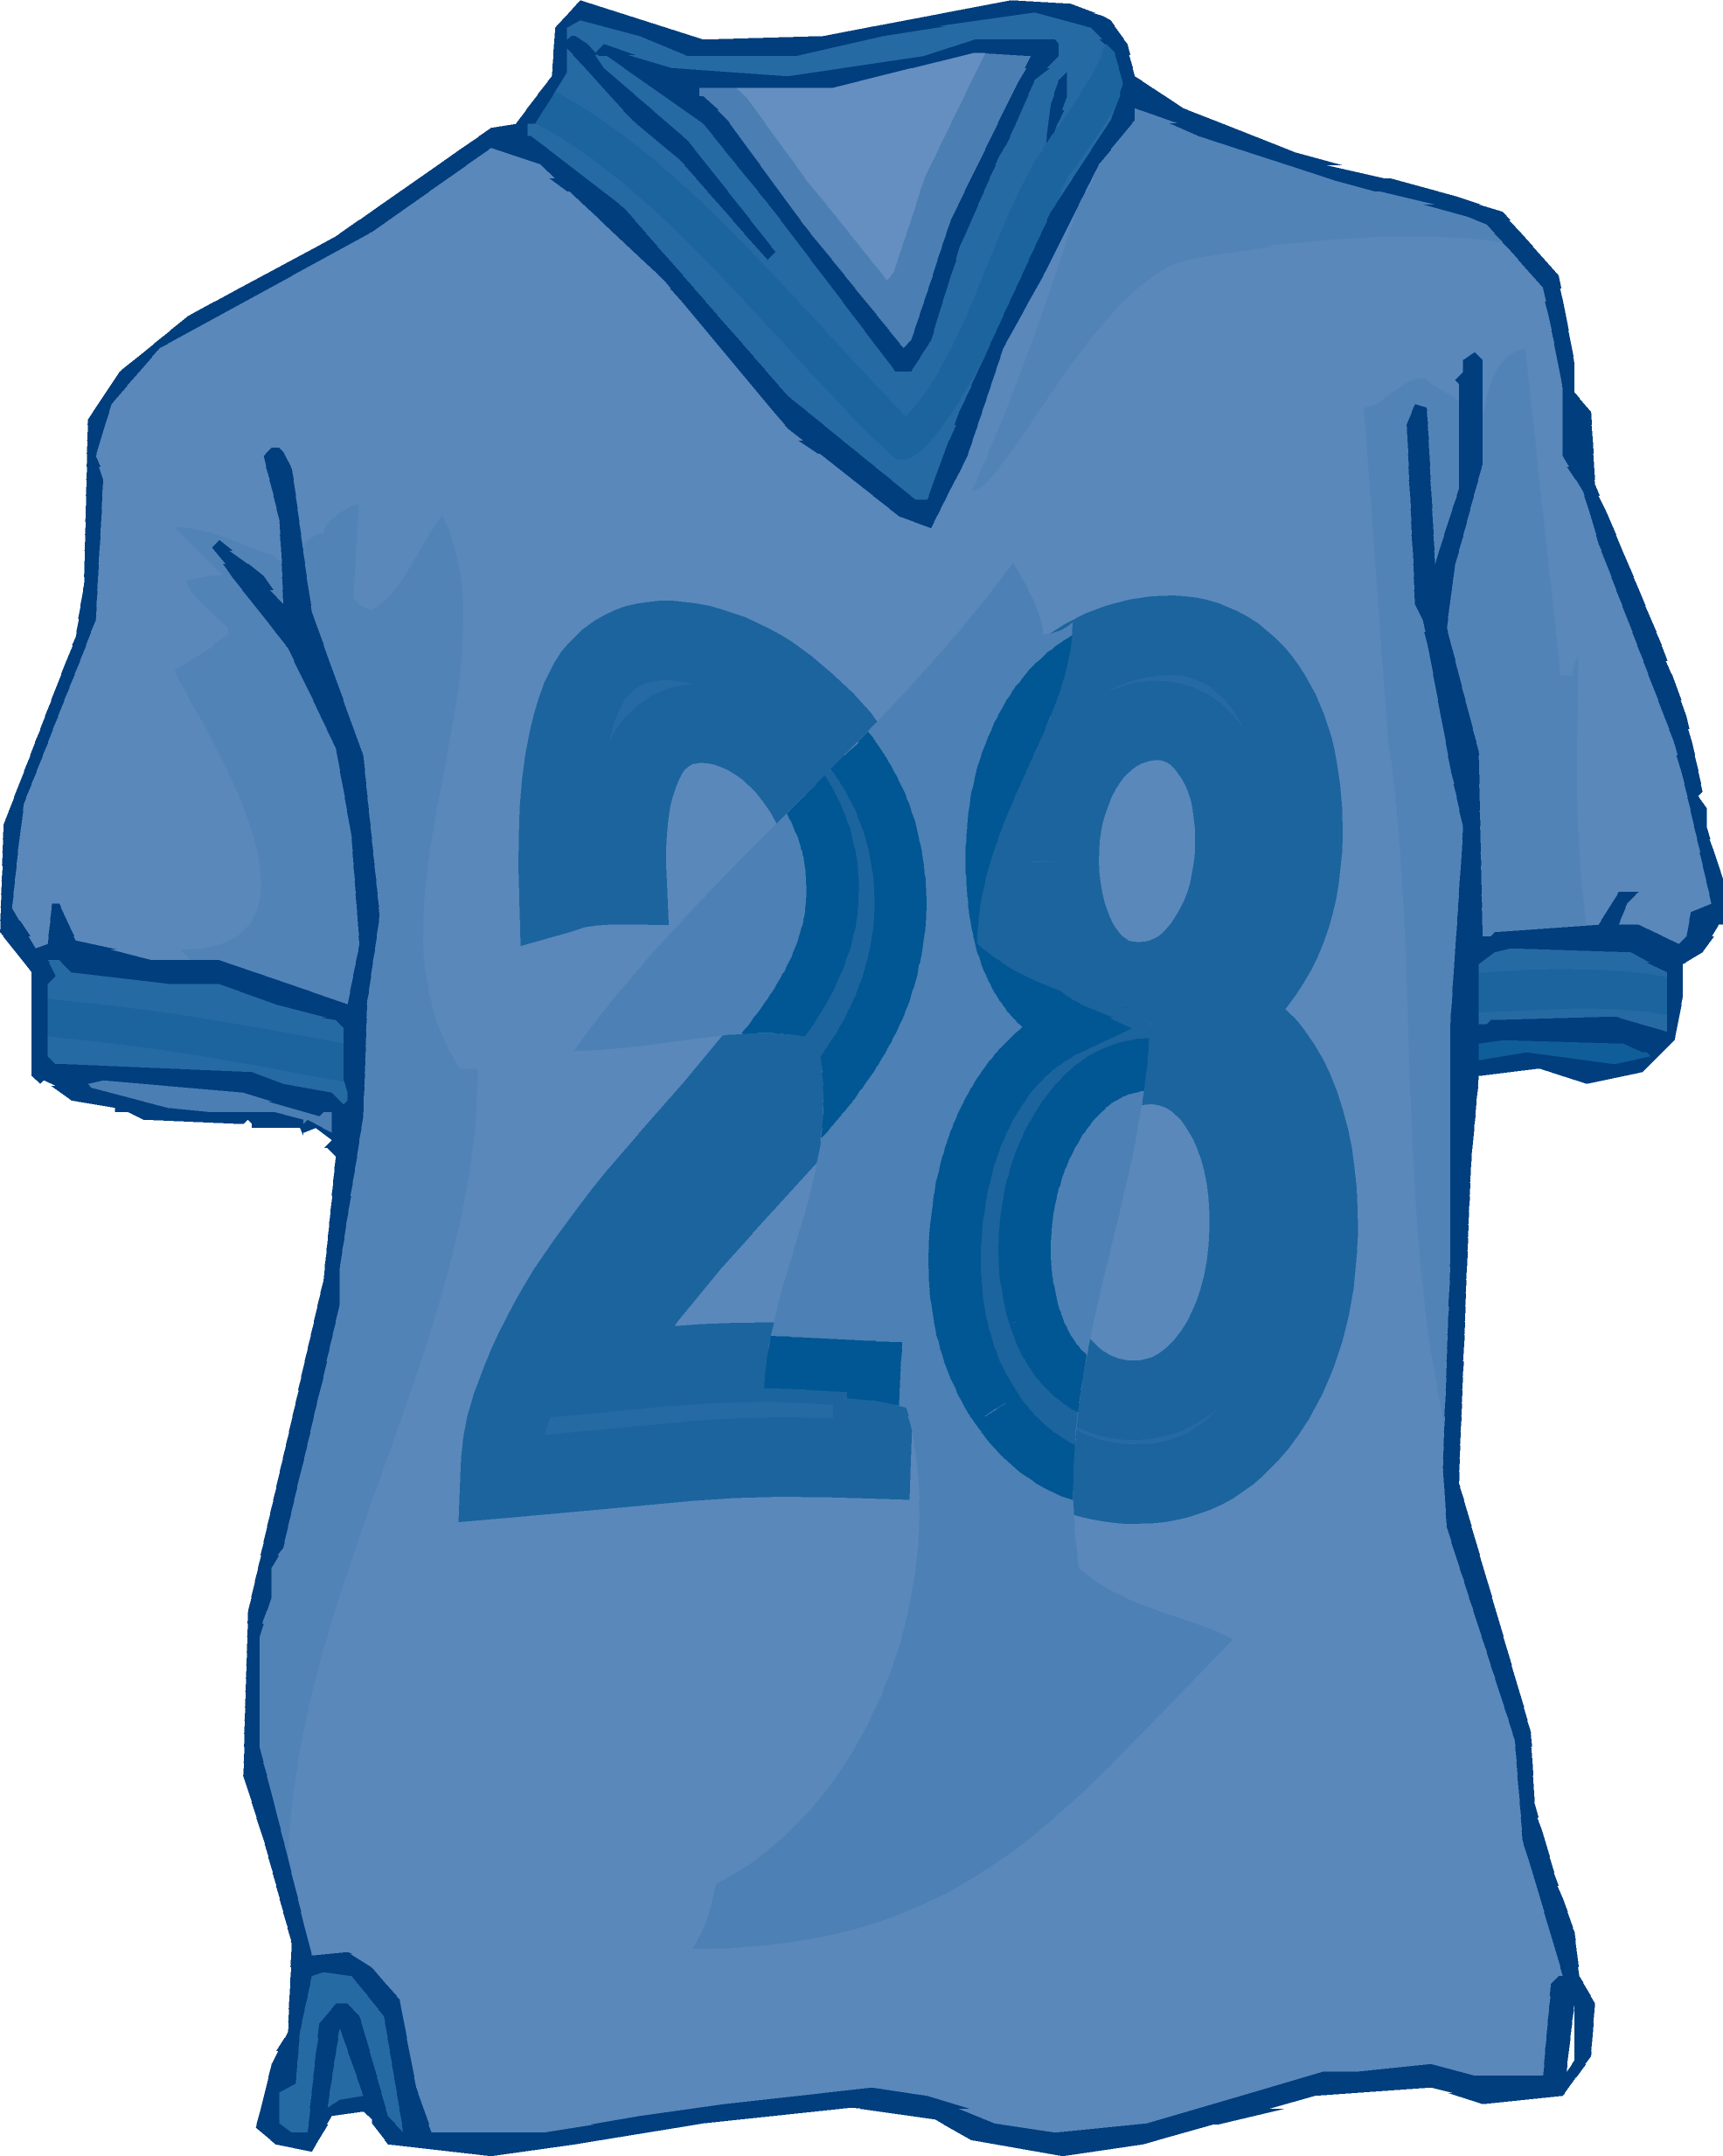 Blue football jersey clipart vector library stock Free Football Uniform Cliparts, Download Free Clip Art, Free Clip ... vector library stock